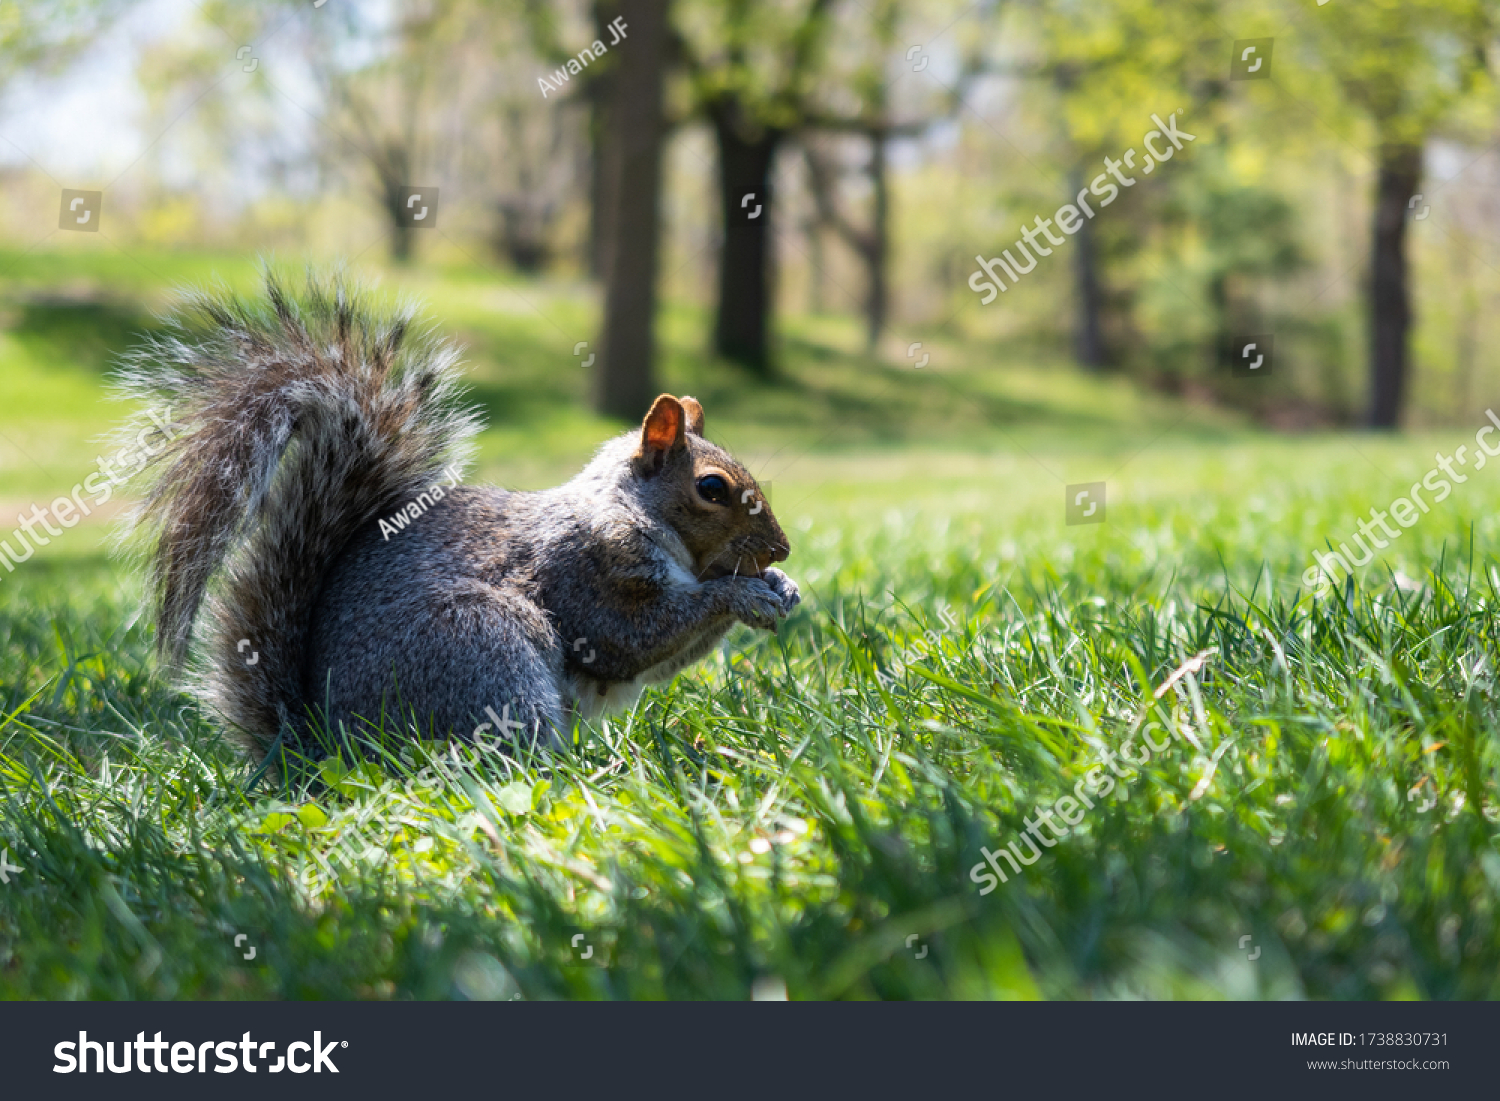 stock-photo-a-wild-squirrel-eating-in-th